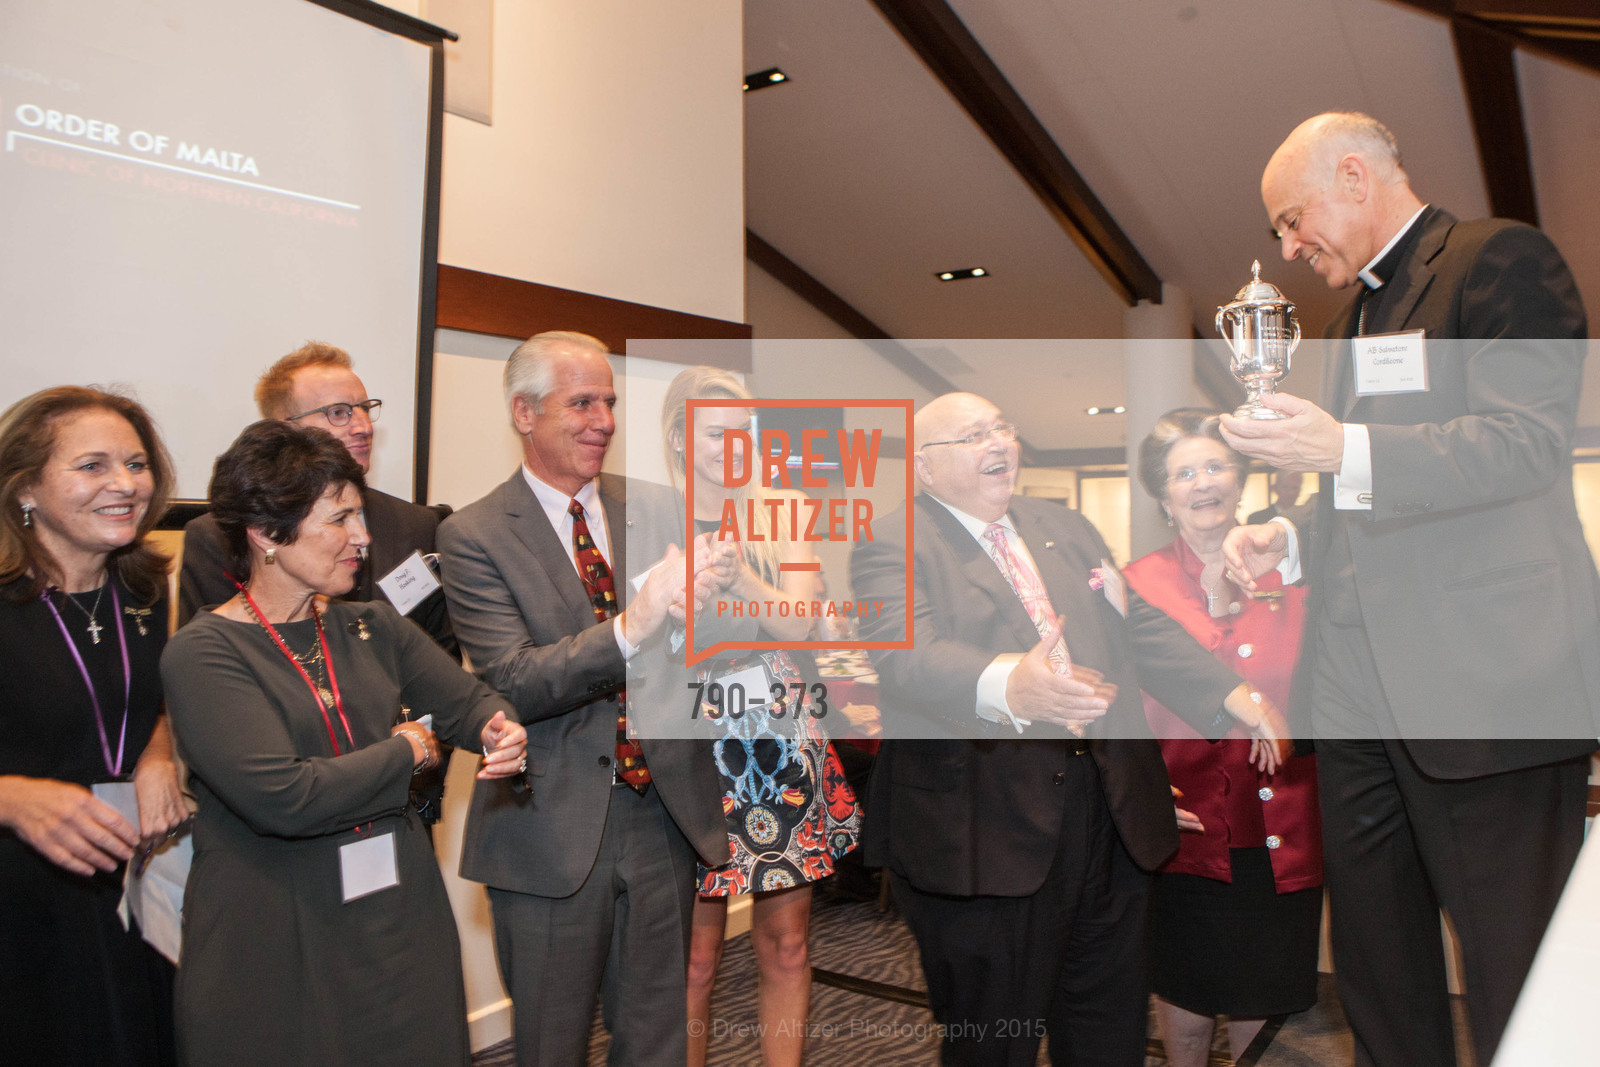 Lisa Simpson, Laura Hosking, Doug Hosking, Katie Hosking, Tony Sanchez-Corea, Lucille Sanchez-Corea, Salvatore Cordileone, Sovereign Order of Malta Presents: A Knight for Champions, 7th Annual Silver Chalice Awards Dinner, St. Francis Yacht Club. 99 Yacht Rd, October 13th, 2015,Drew Altizer, Drew Altizer Photography, full-service event agency, private events, San Francisco photographer, photographer California